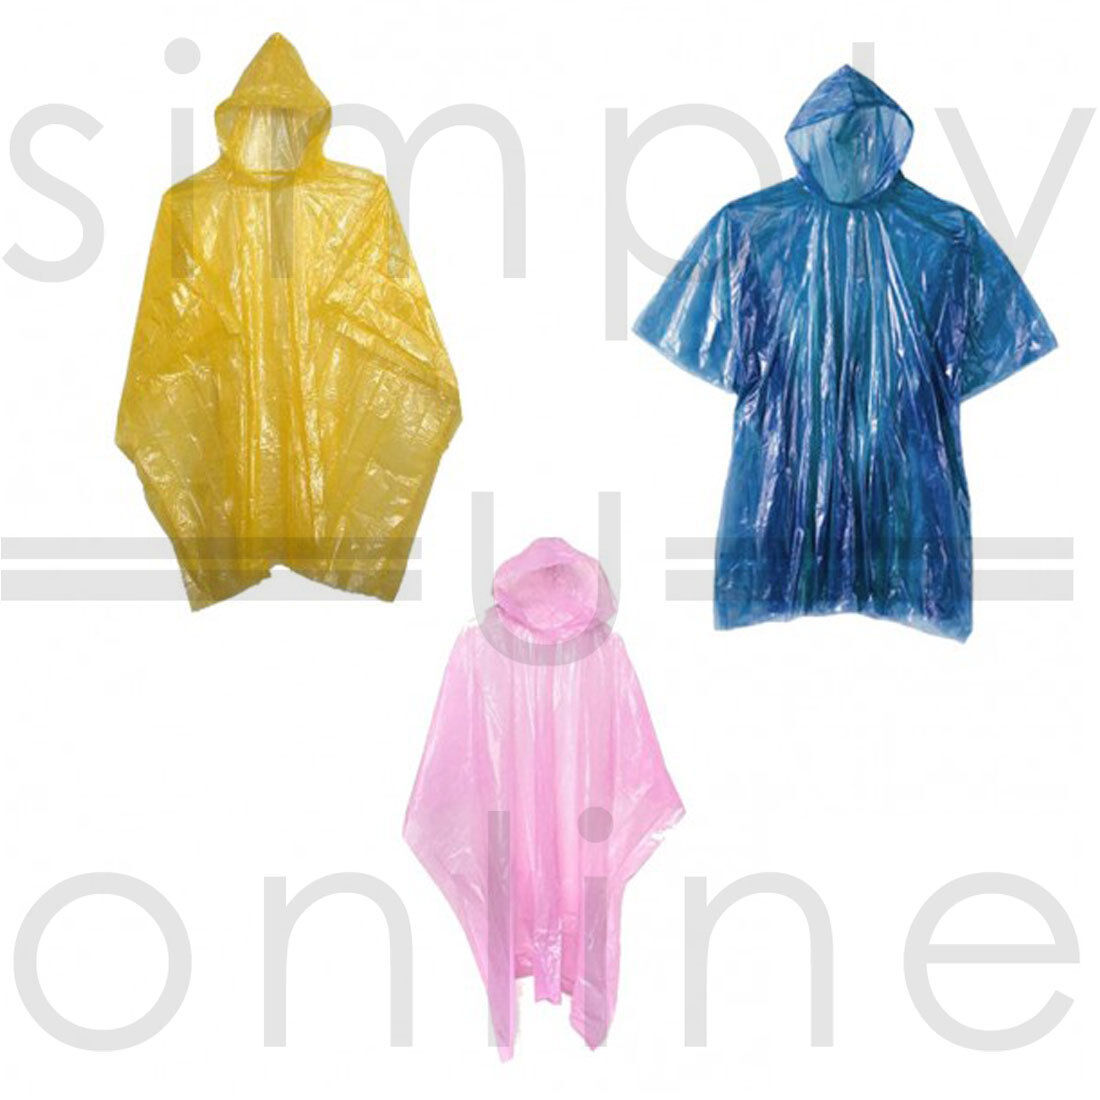 Emergency Rain Poncho Waterproof Coat Cape Mac Disposable Festivals, Camping etc